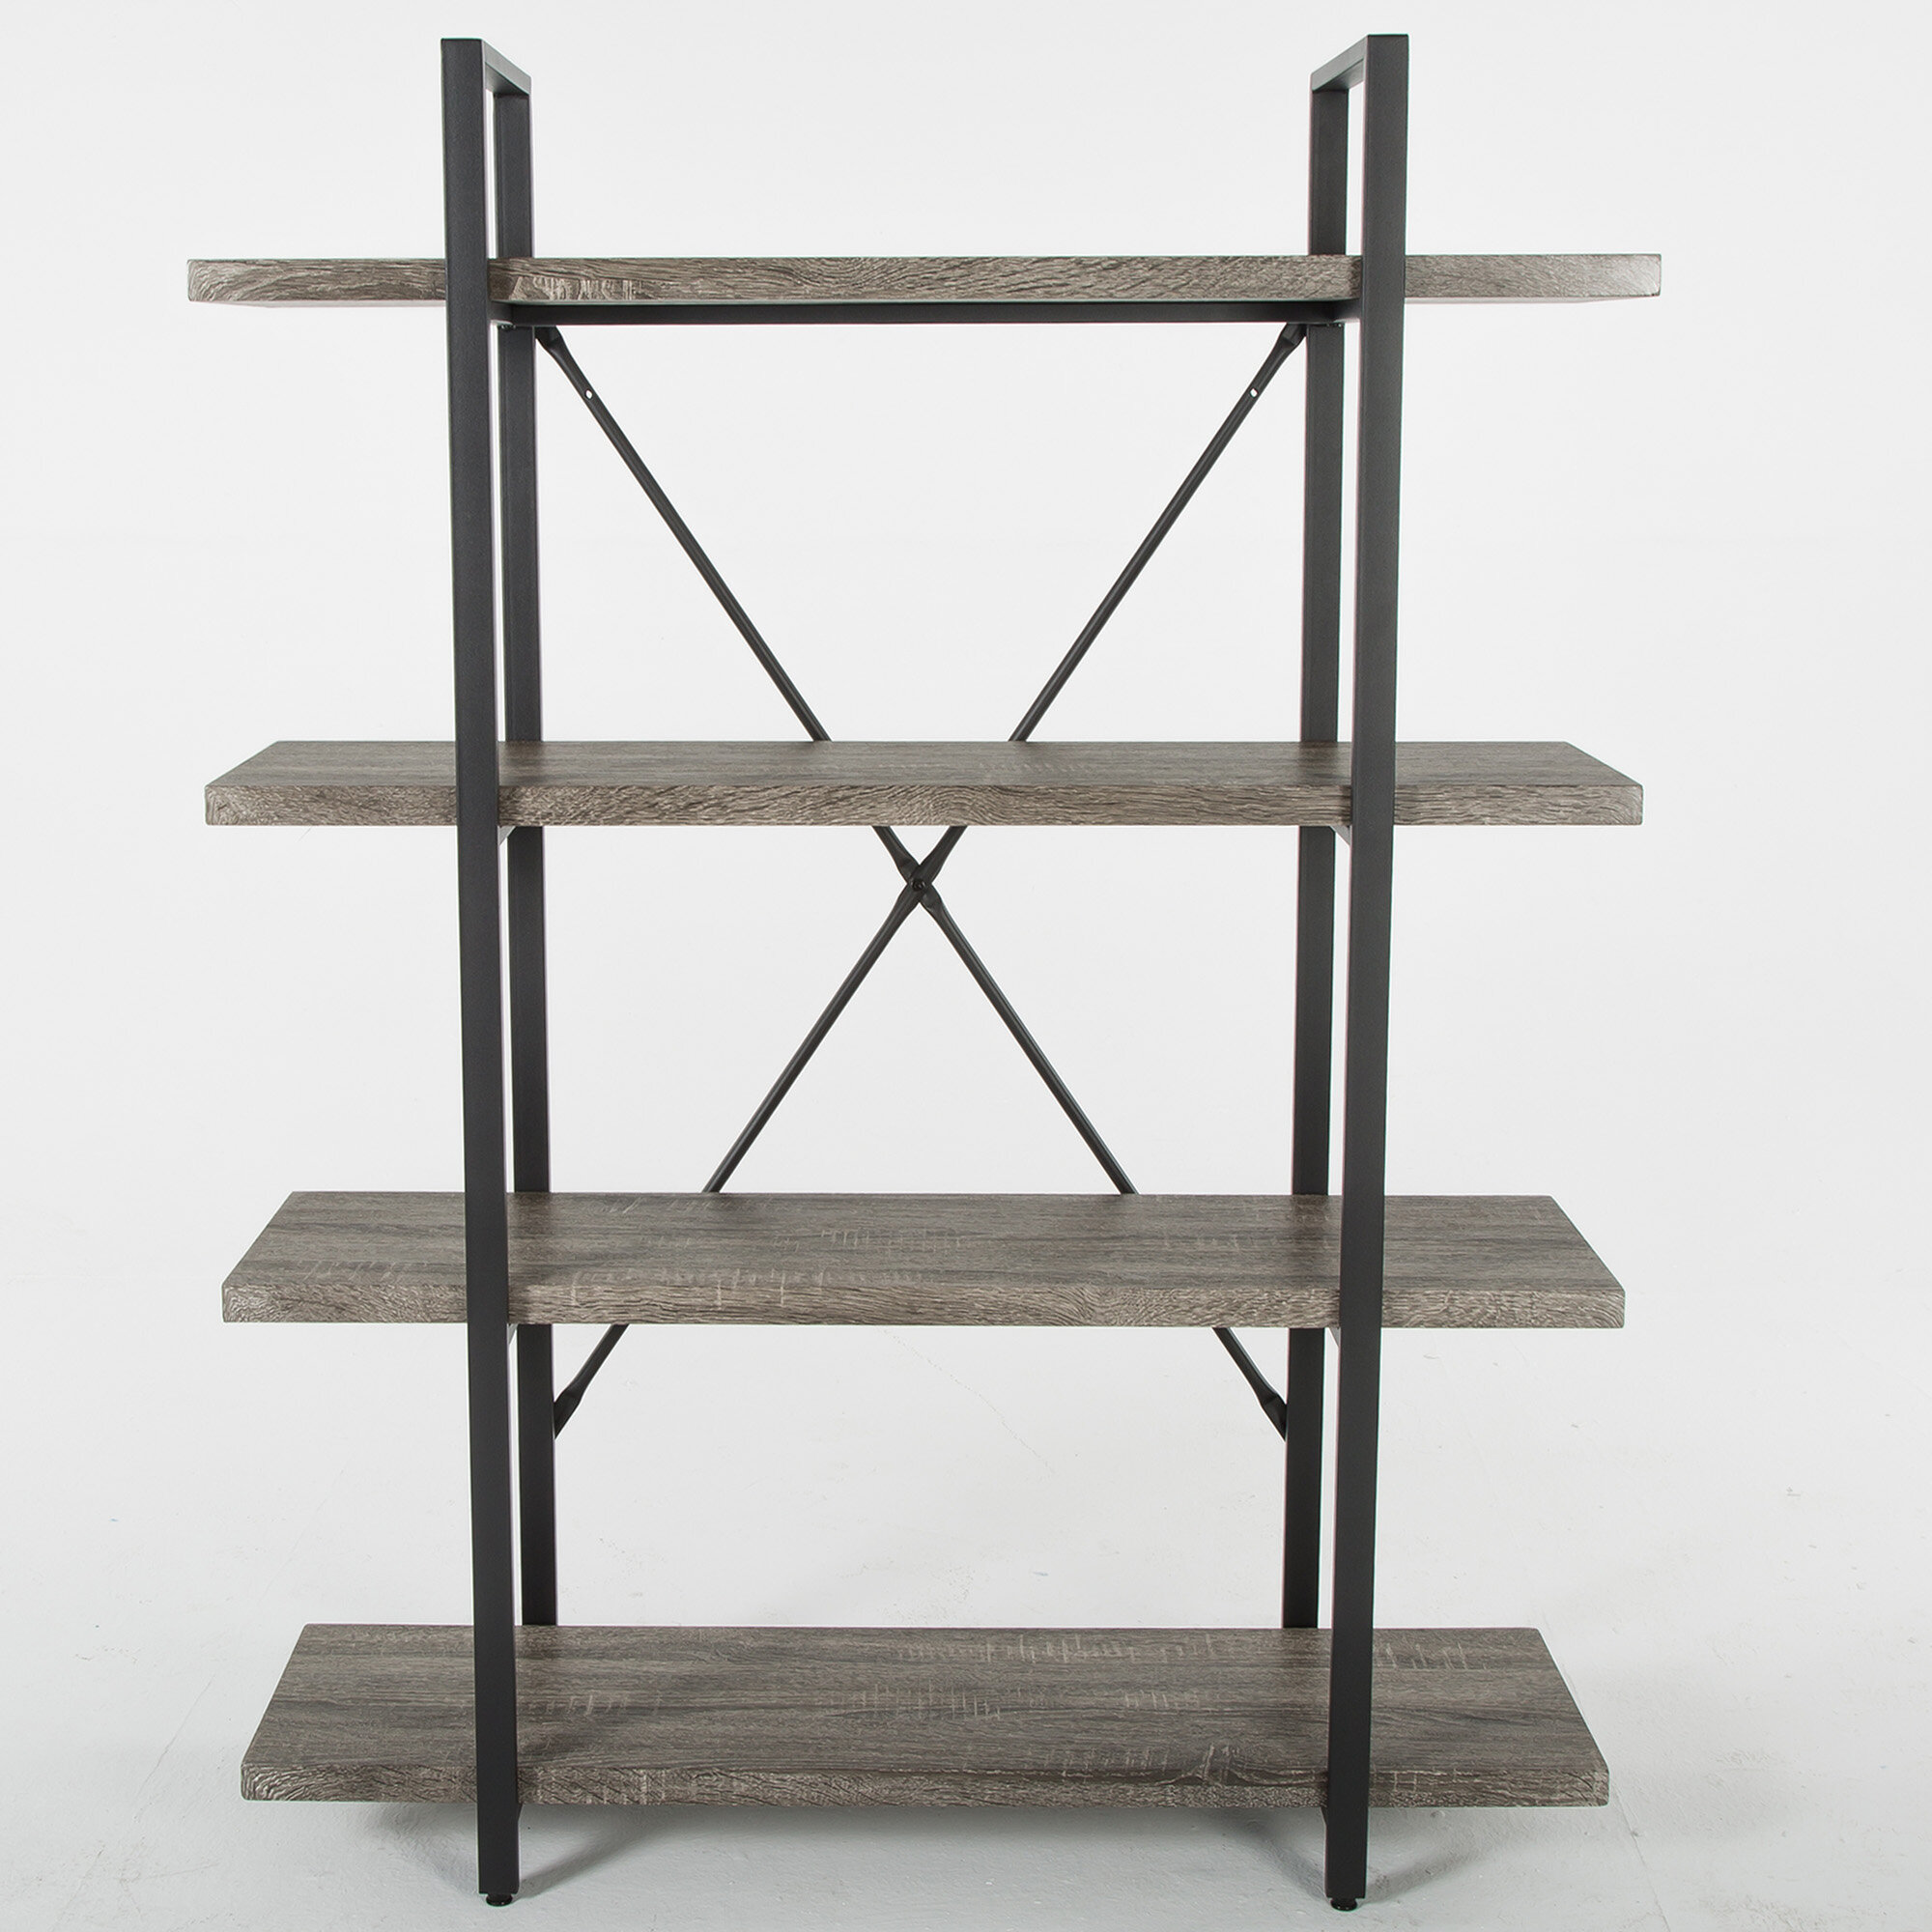 Ranck 4 Tier Rustic Industrial Wood And Metal Etagere Bookcase